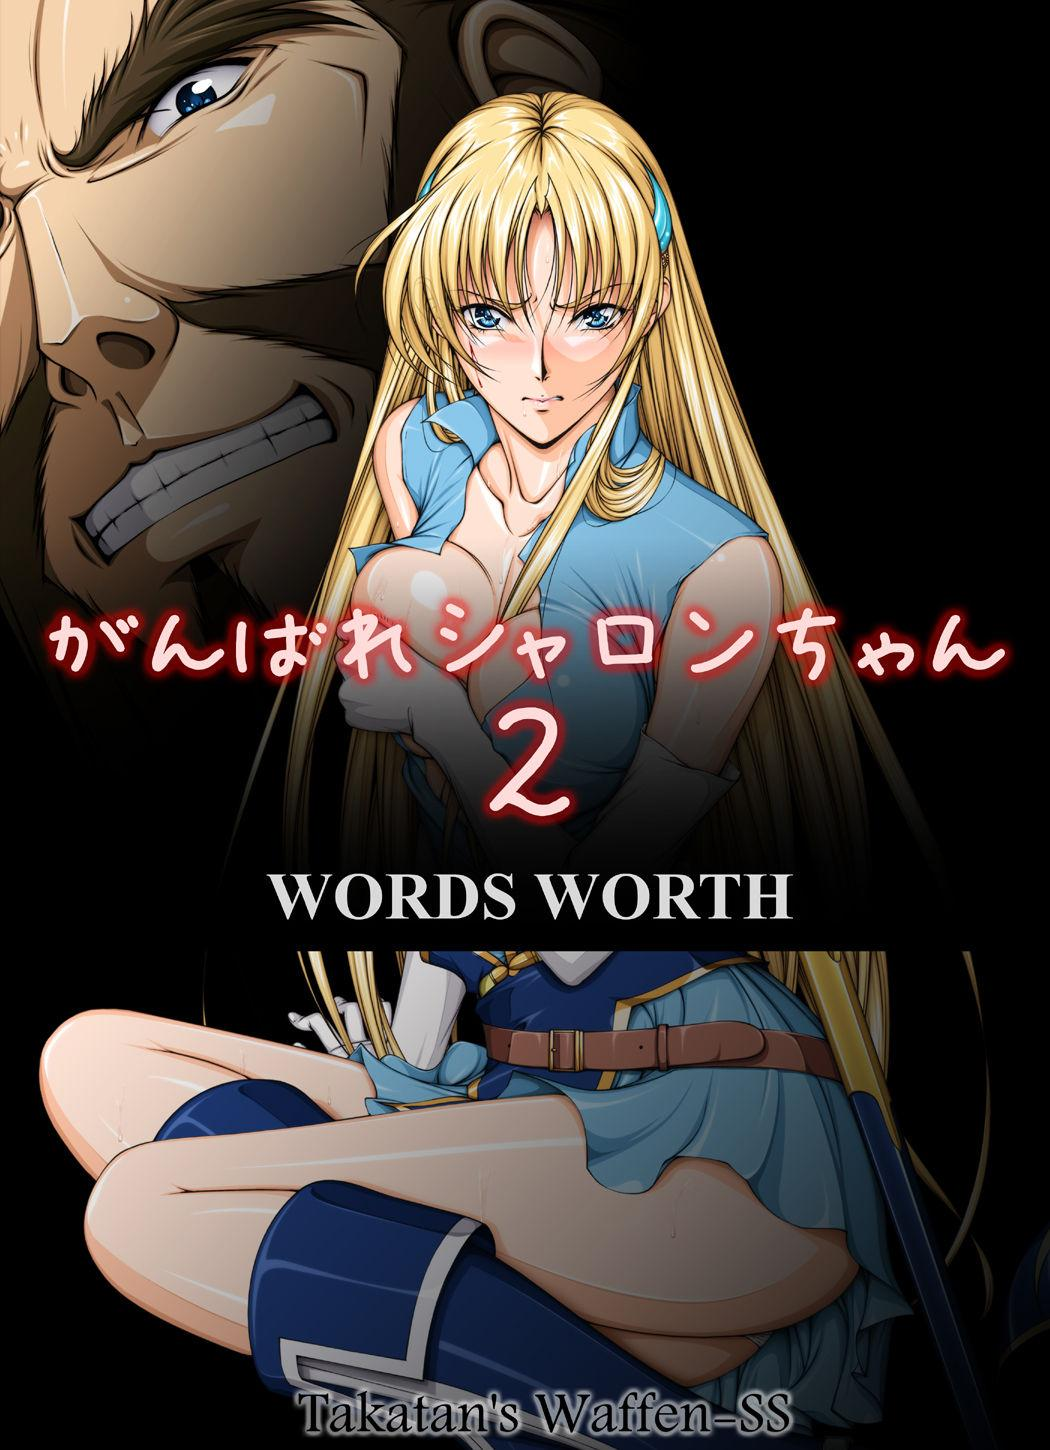 [Takatan's Waffen-SS] Fight, Sharon! 2 [Deluxe Edition] (Words Worth) +omake 335